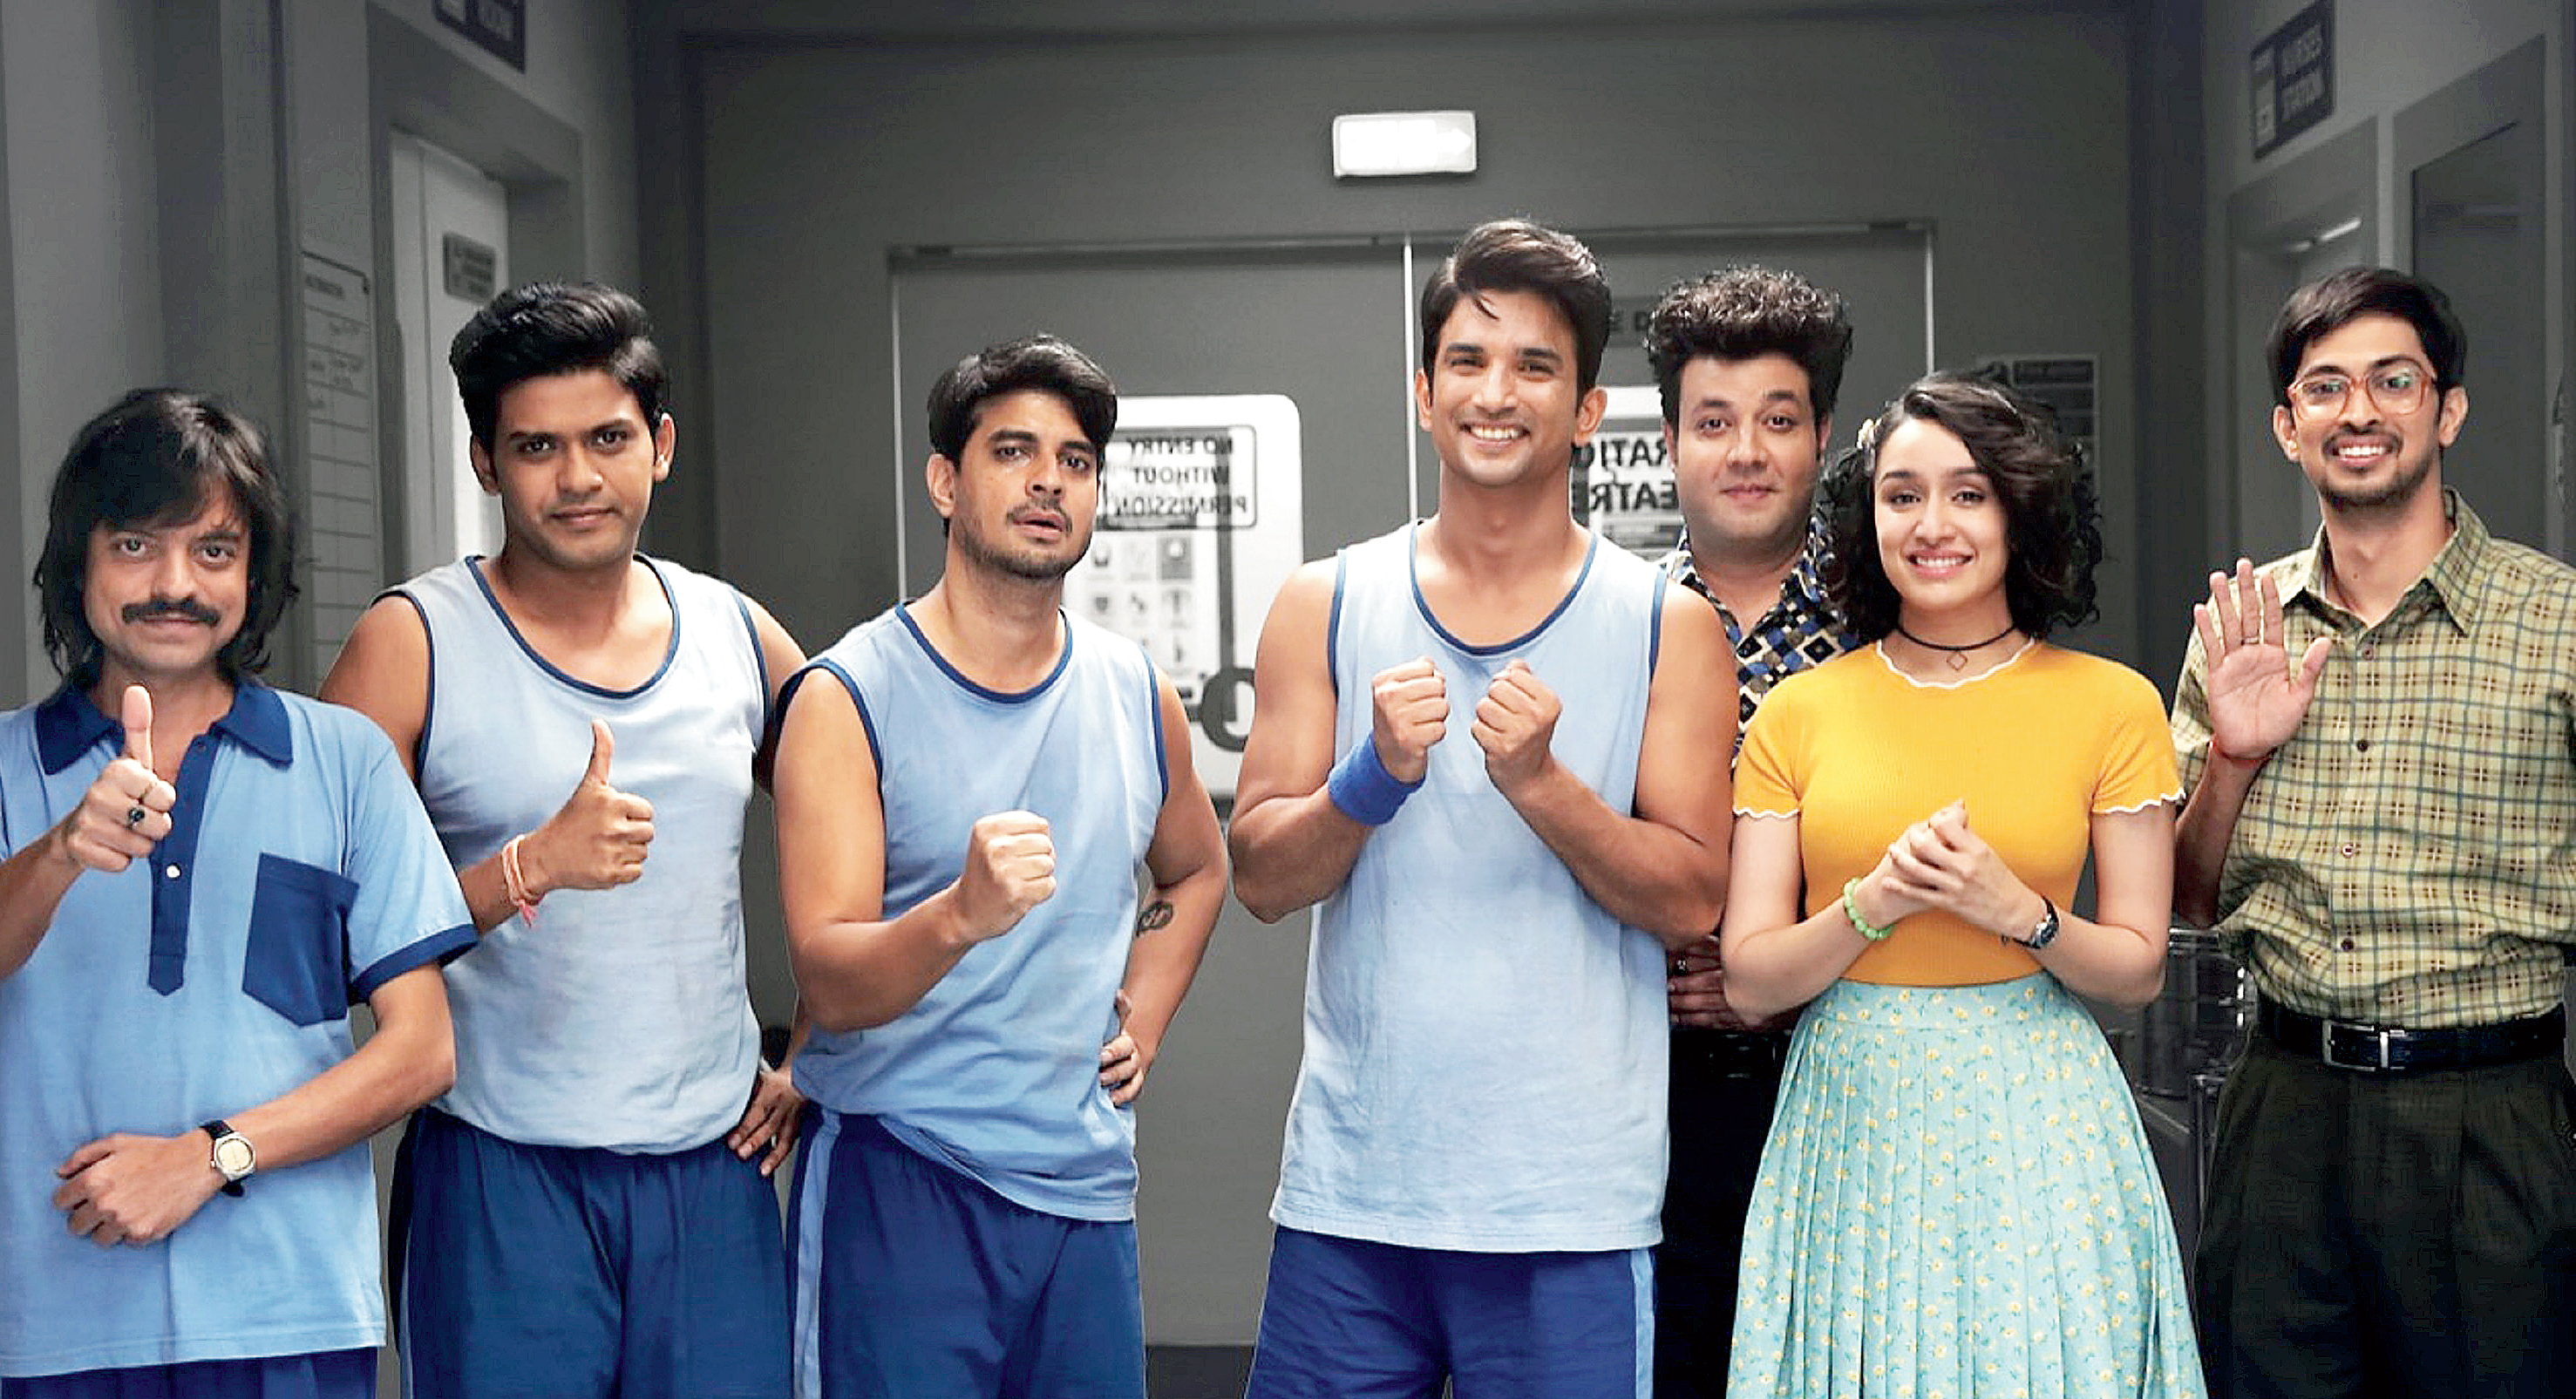 Relatable & nostalgic, the Chhichhore group of friends warms hearts